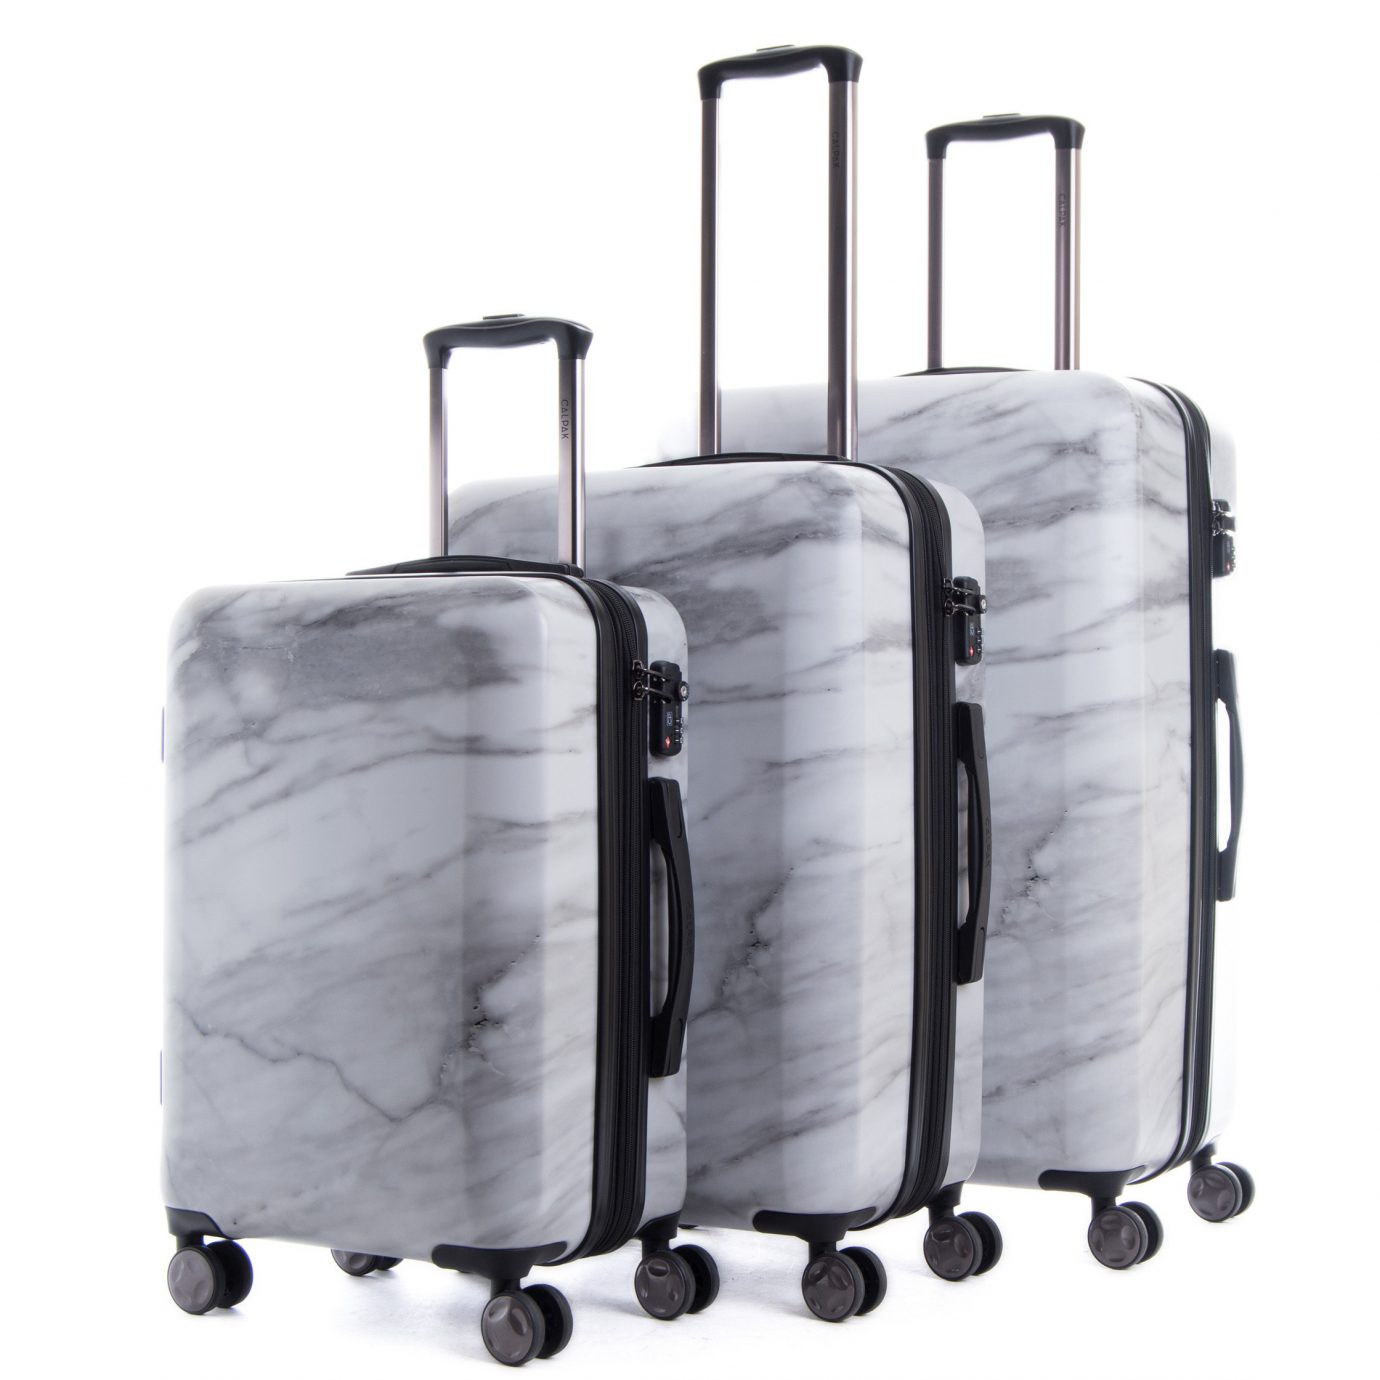 Gift Guides Packing Tips Style + Design Travel Shop luggage suitcase hand luggage indoor product bag handcart different stack